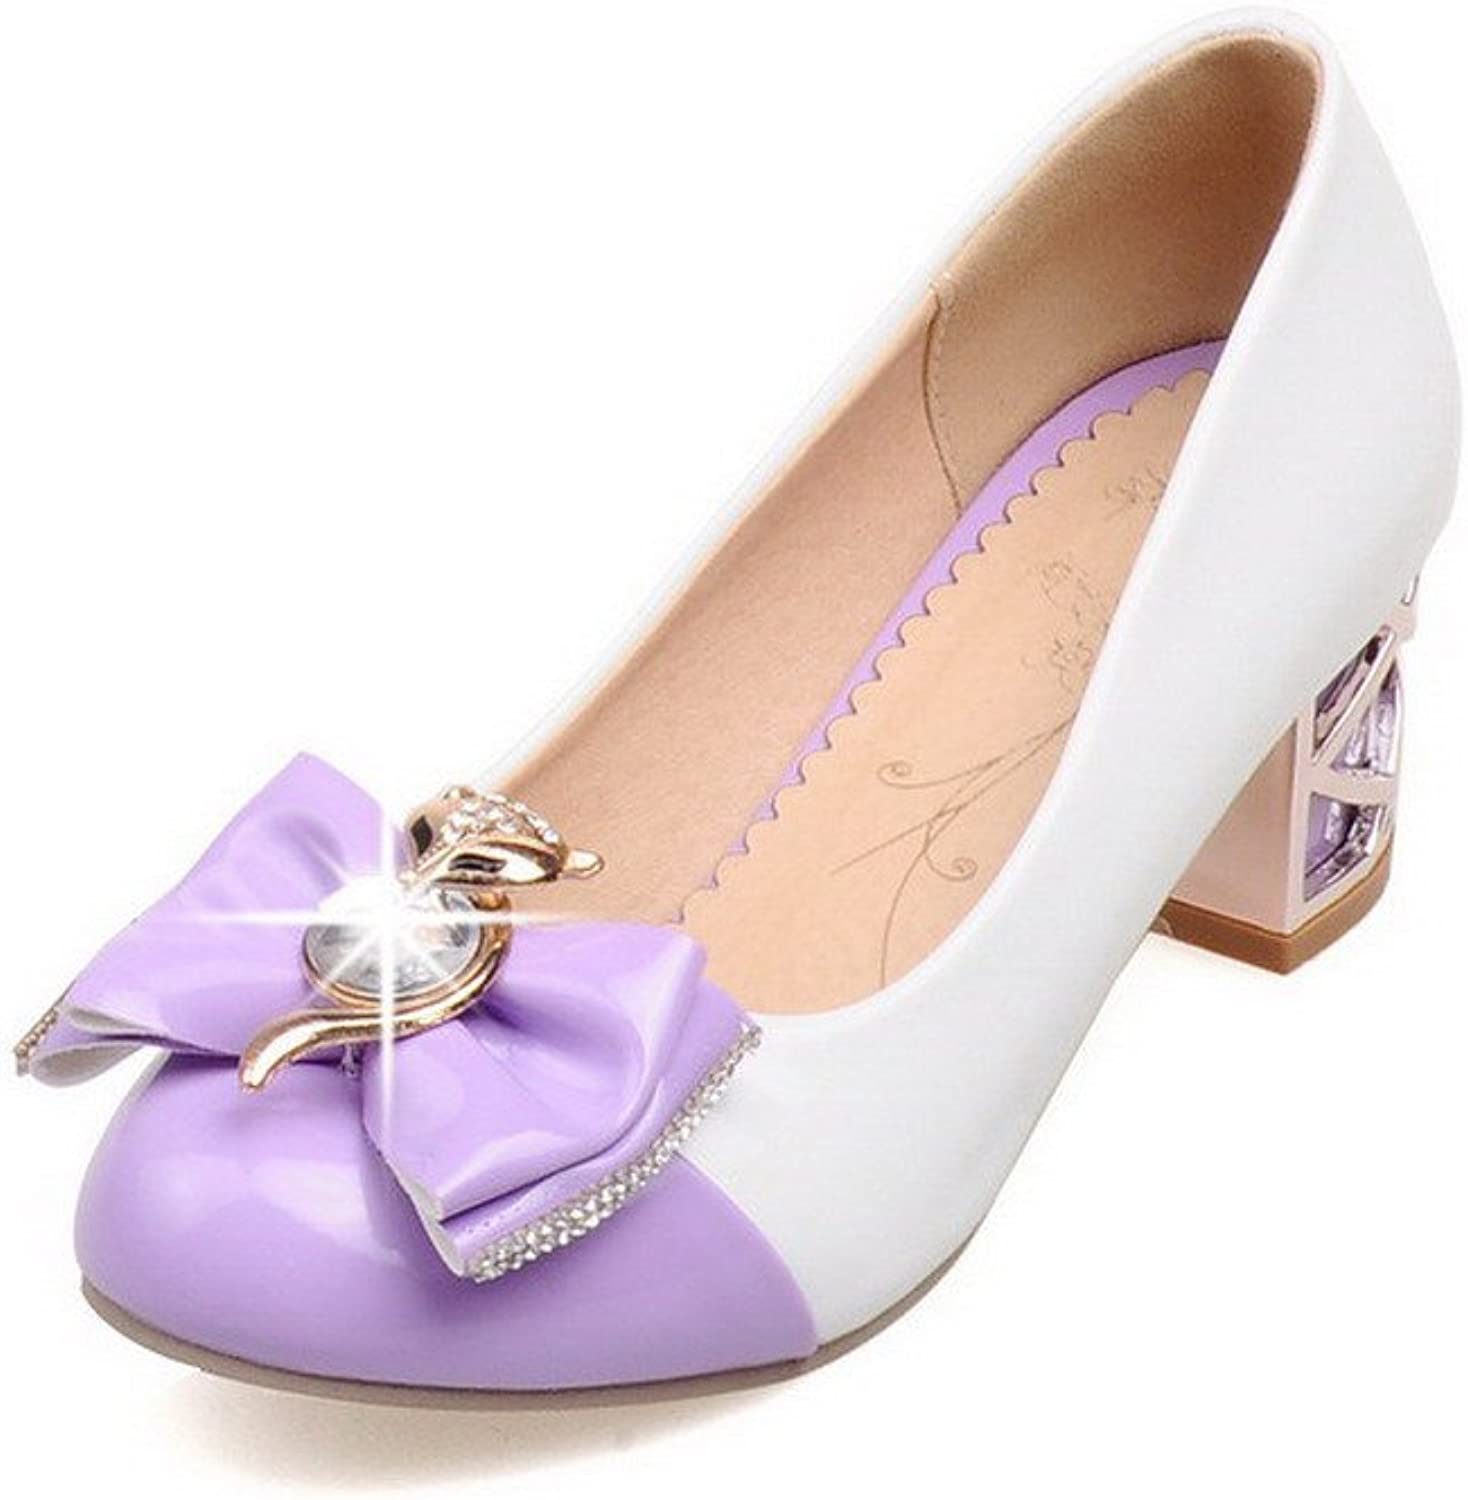 WeiPoot Women's Assorted color PU Kitten-Heels Round Closed Toe Pull-on Pumps-shoes